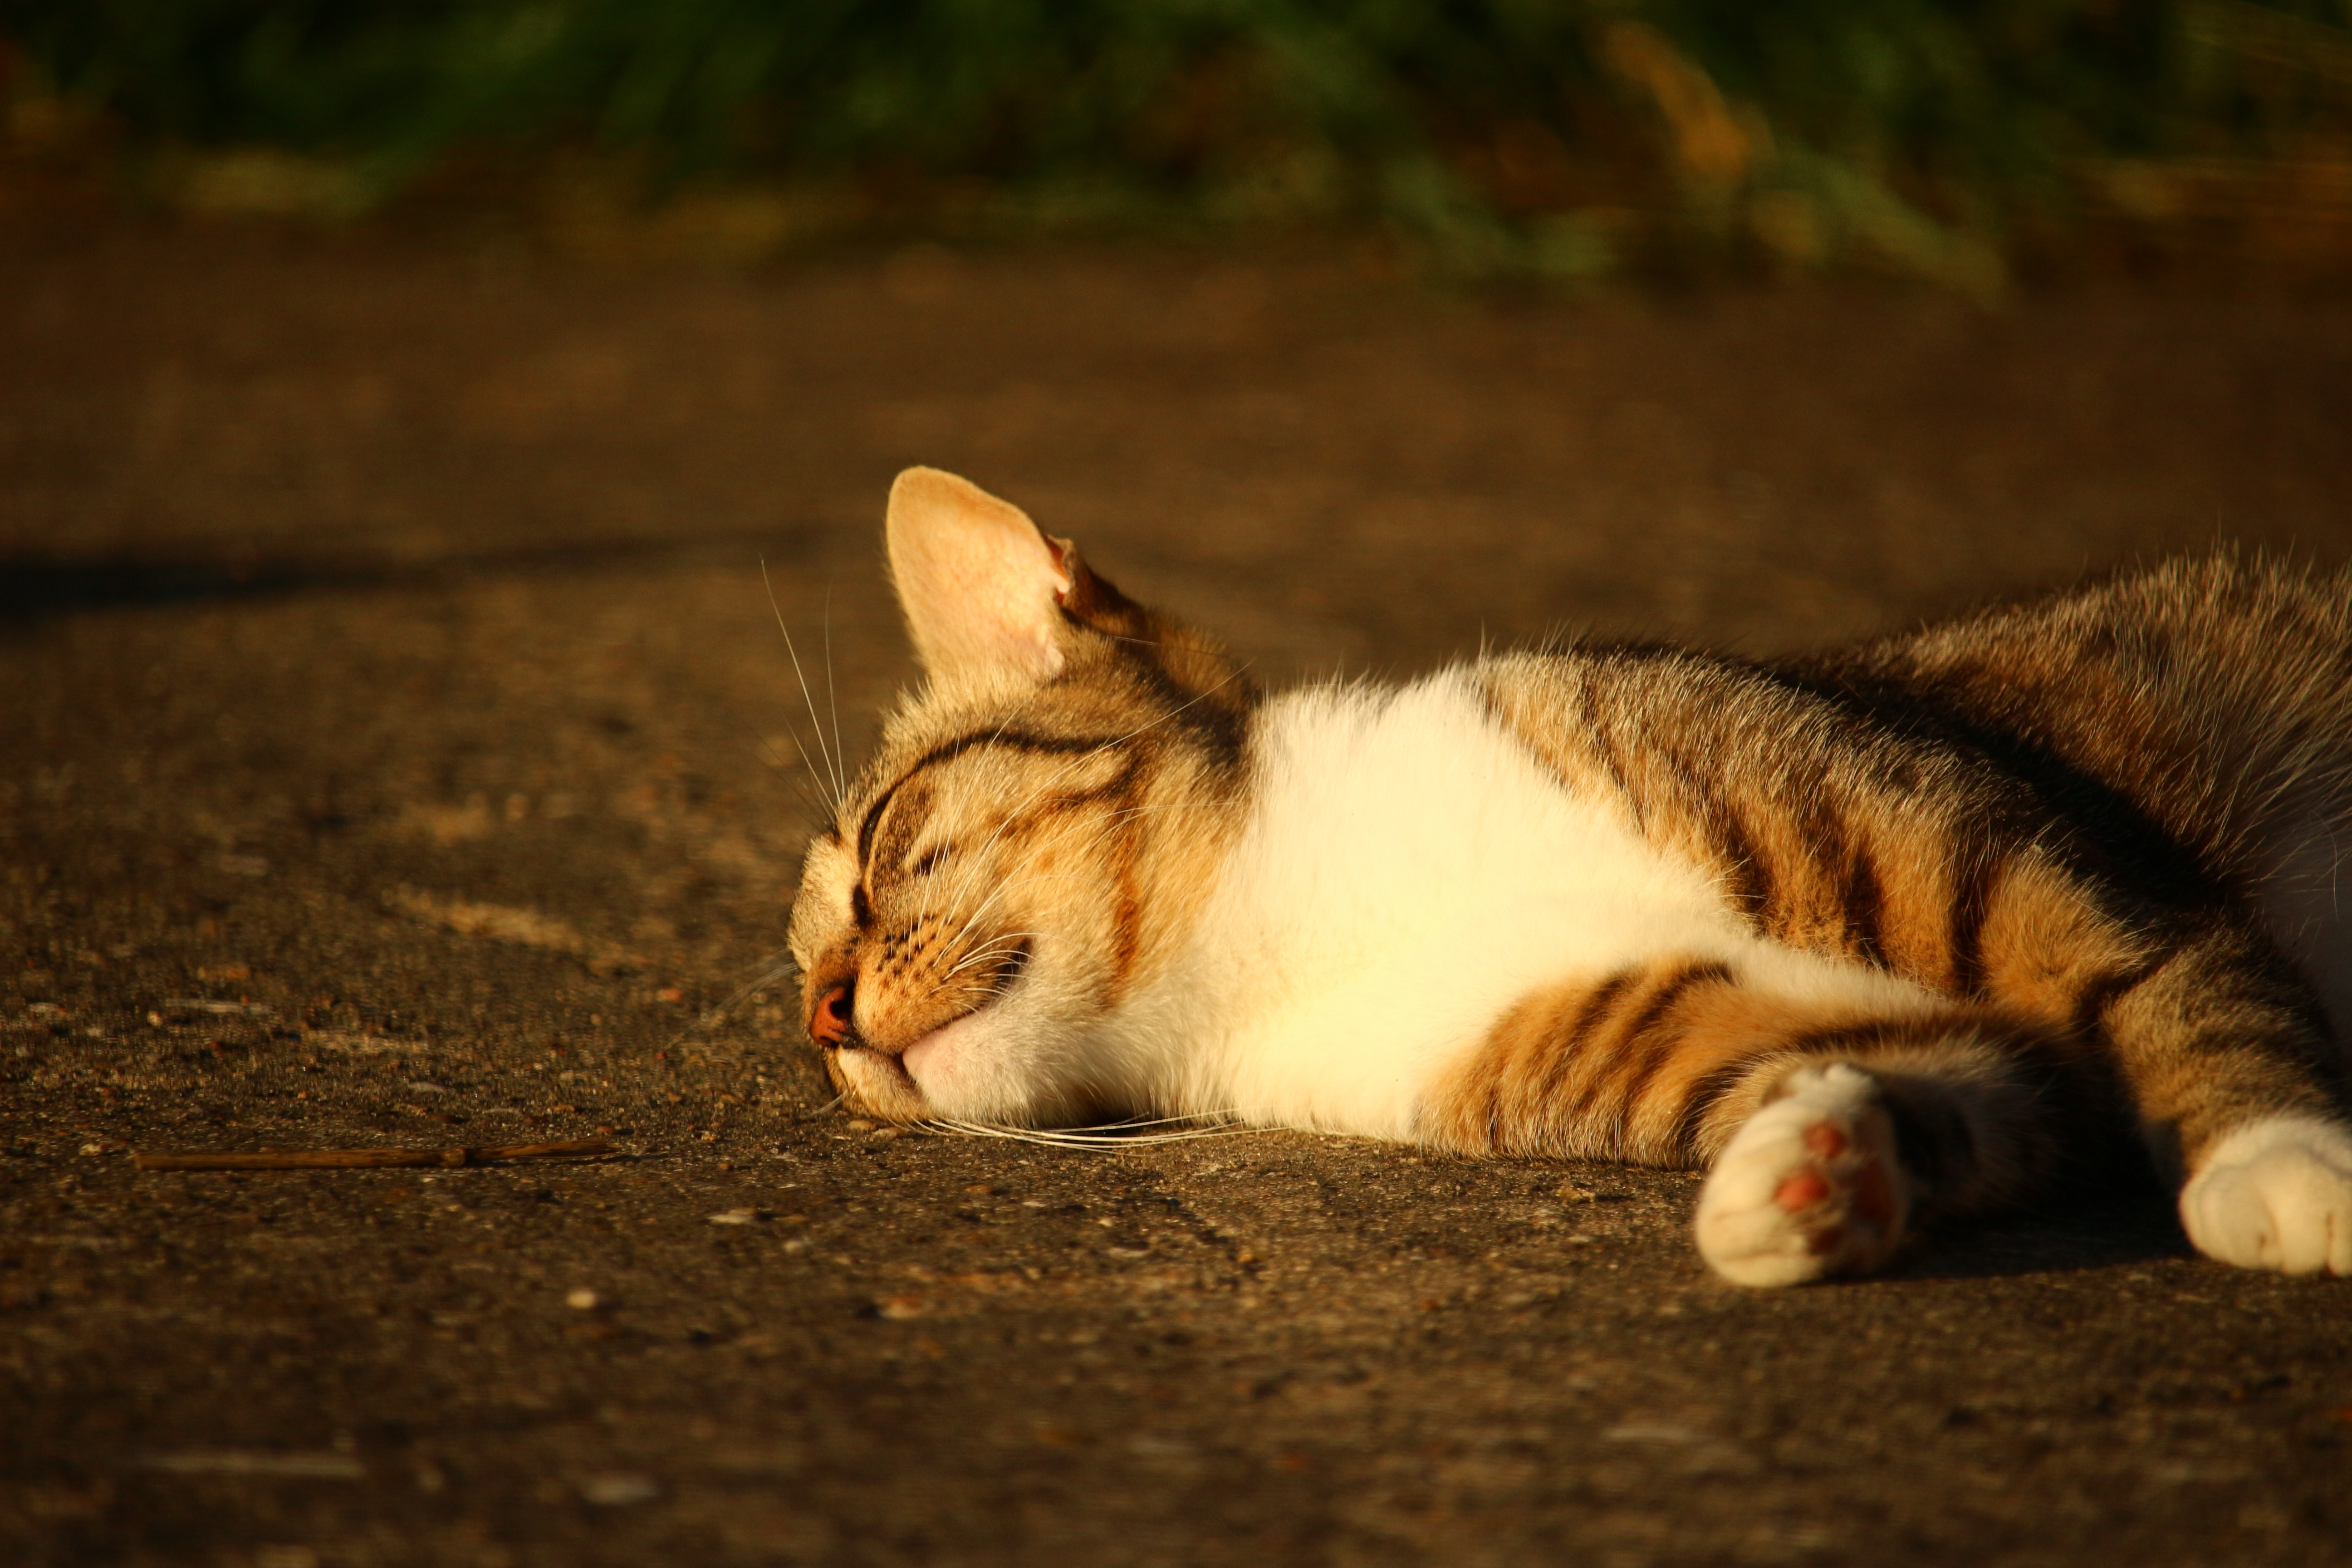 95032 download wallpaper Animals, Cat, Lies, Striped, Sunlight screensavers and pictures for free